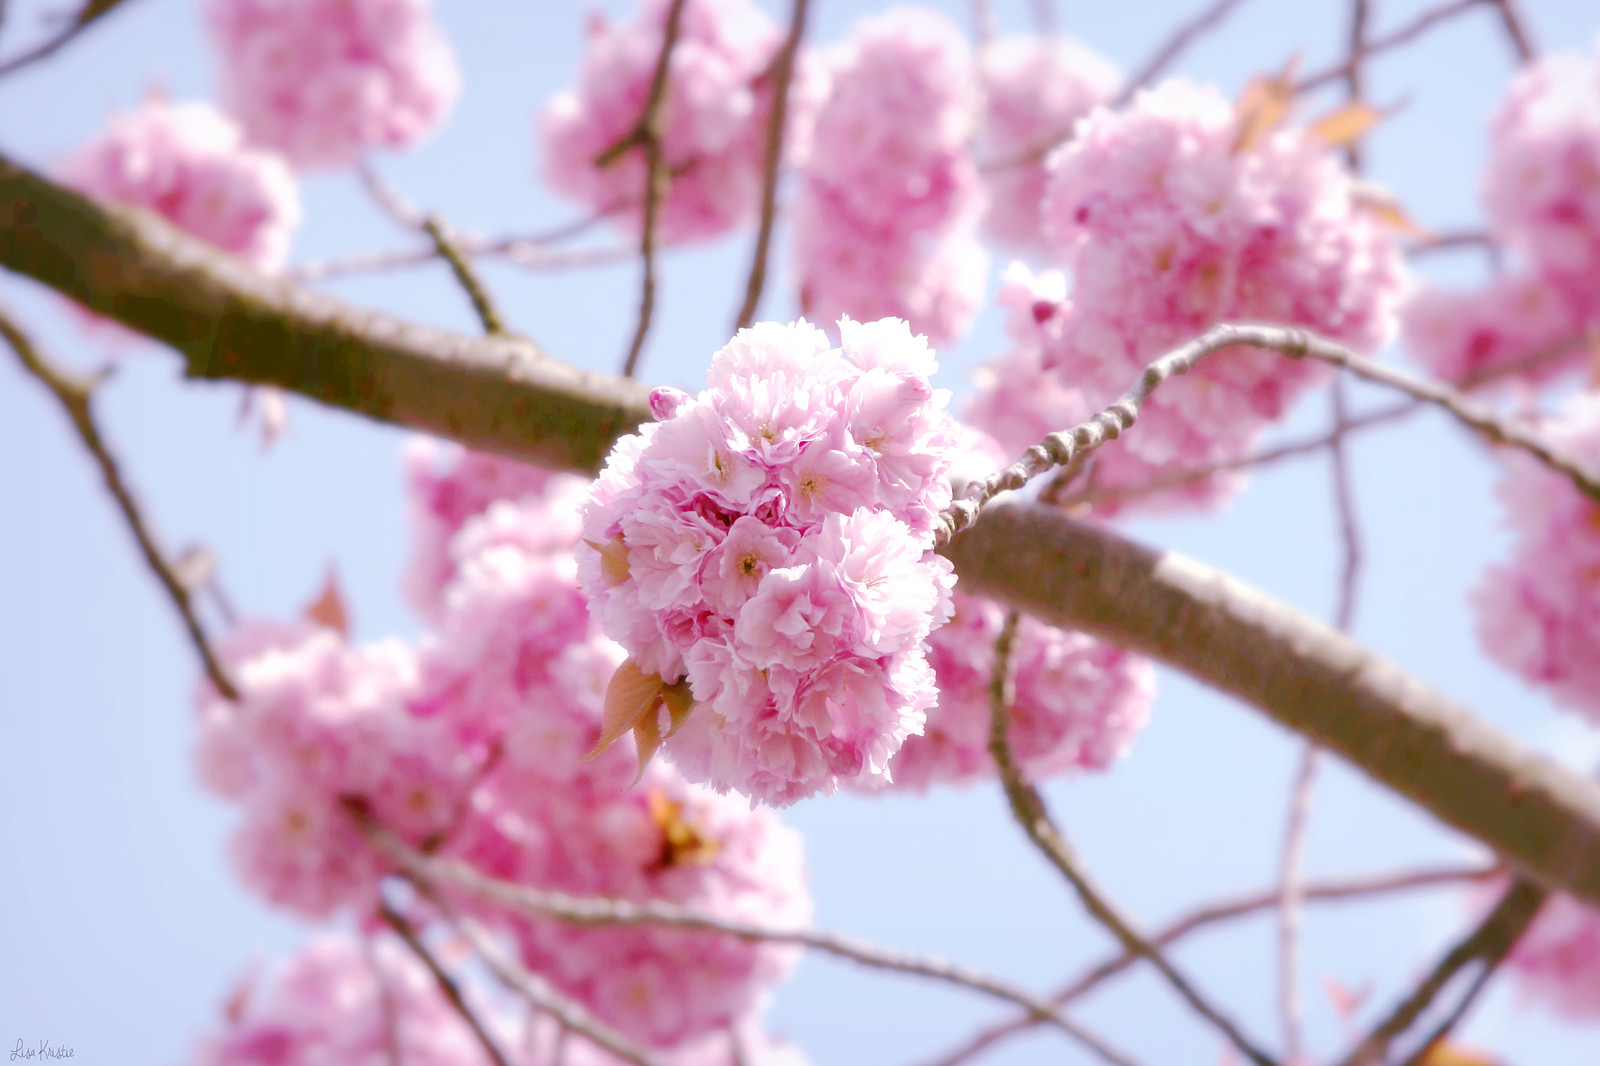 cherry blossoms flowers closeup tree pink petals beautiful spring april europe belgium branch